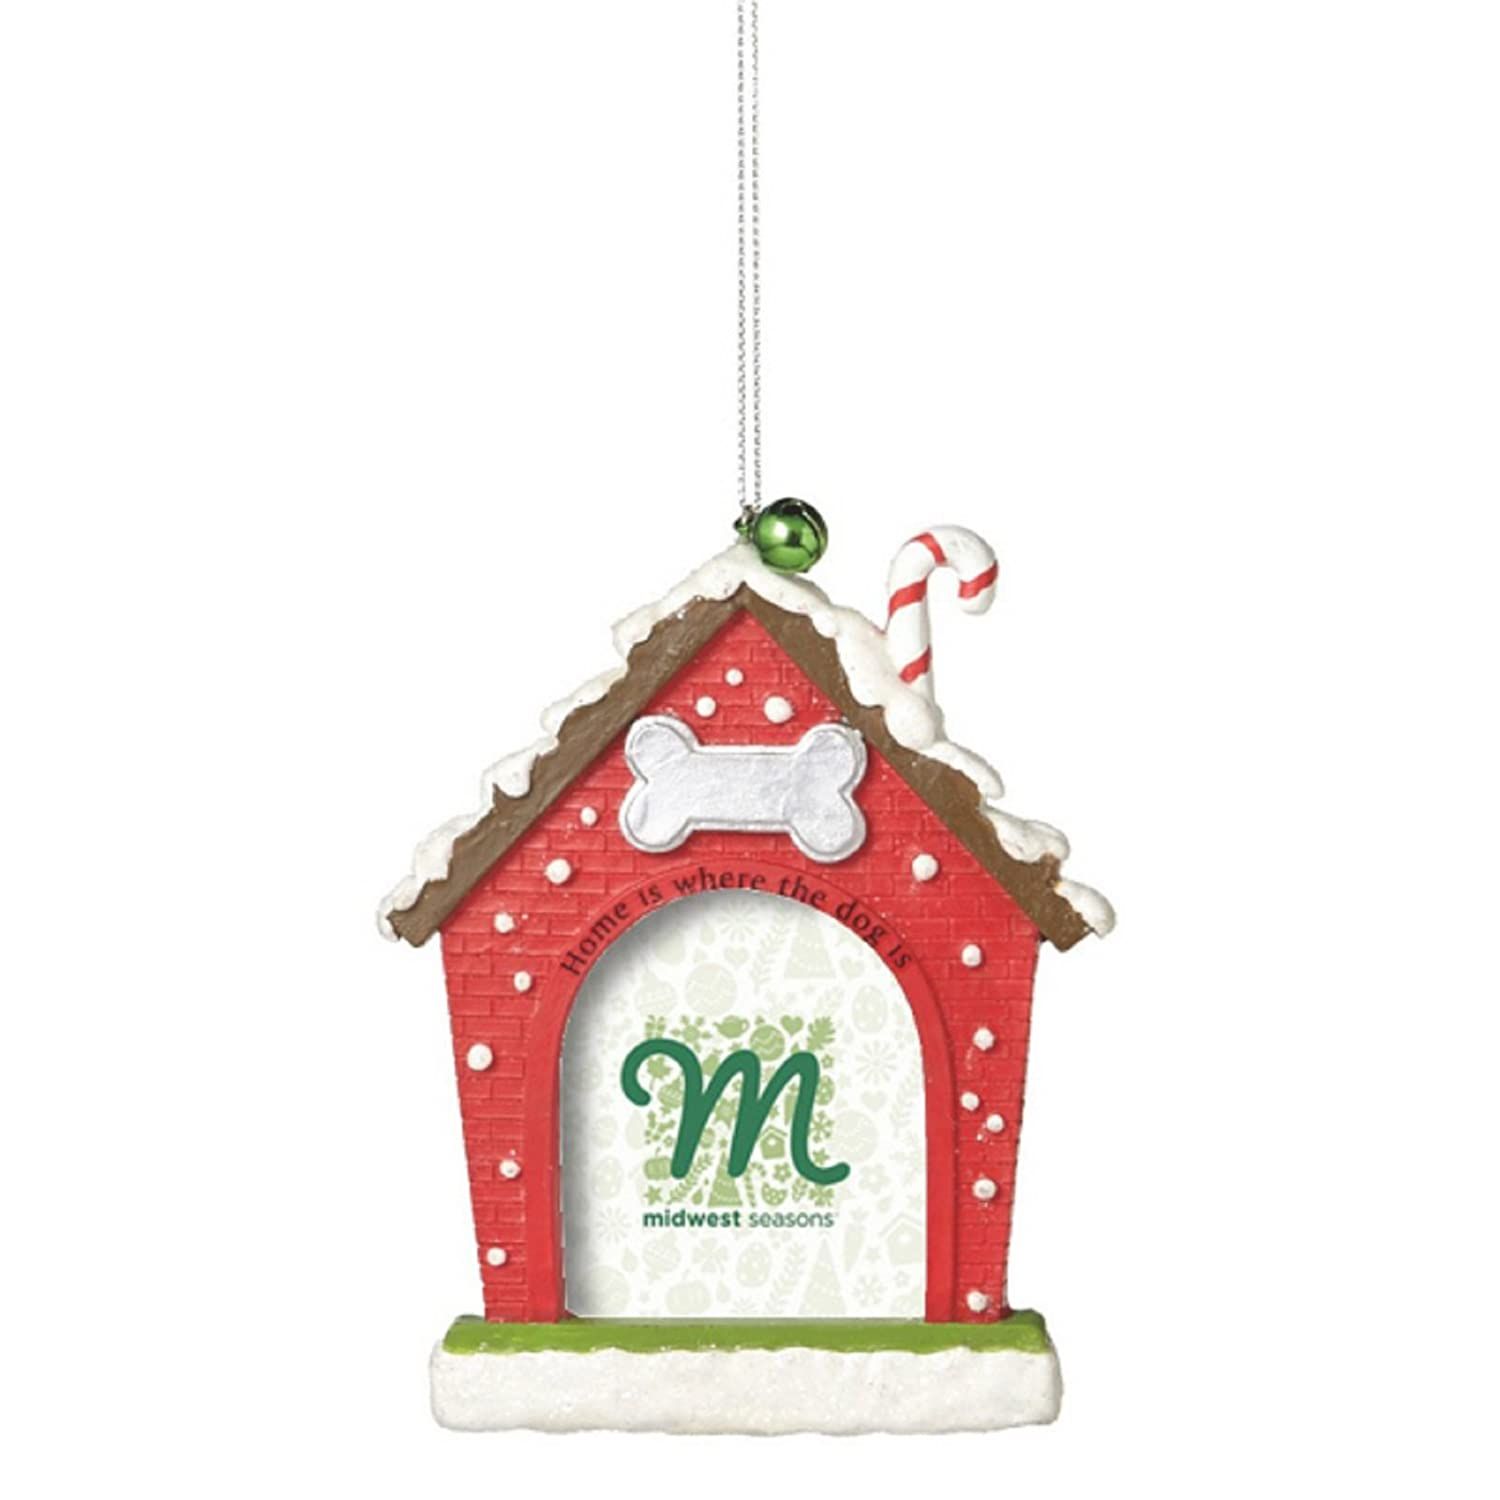 Amazon.com: Christmas Dog House Frame Ornament by Midwest-CBK ...